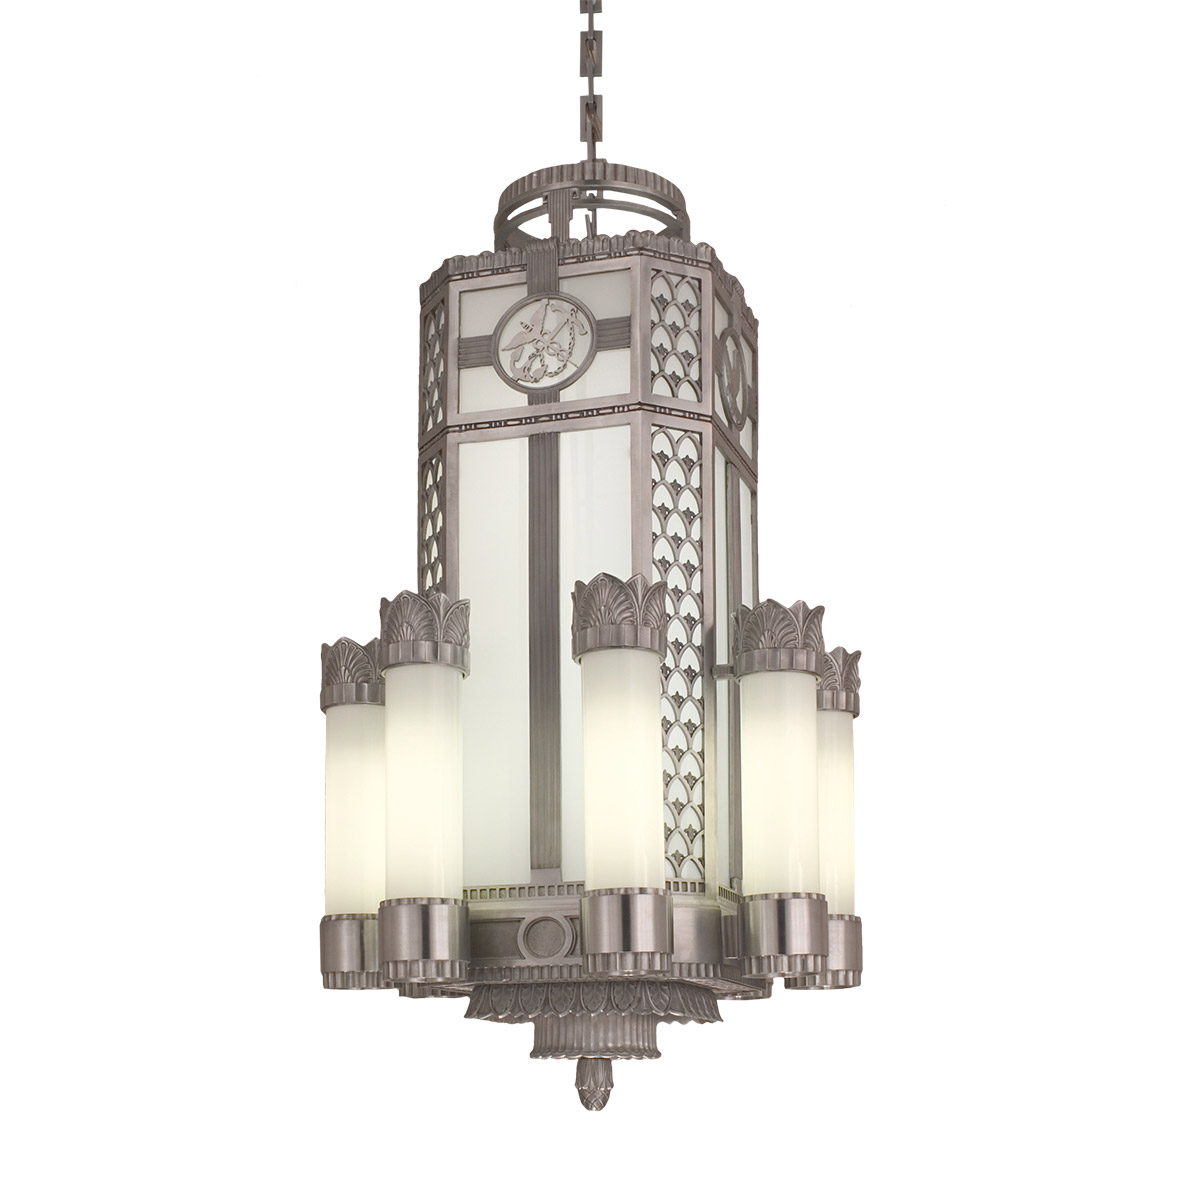 Pendant Lighting Art Deco Pendant Replica Crenshaw Lighting